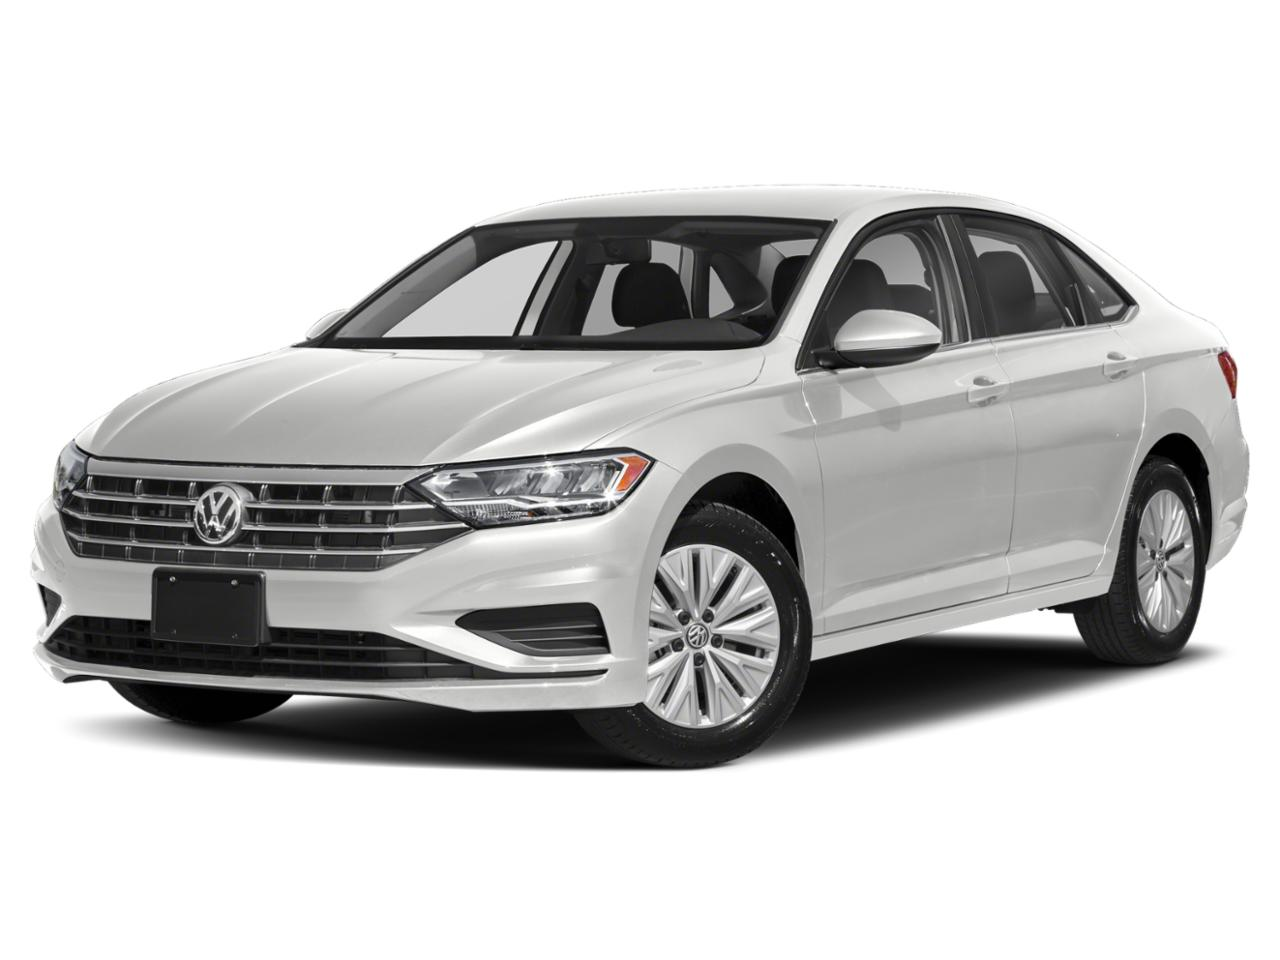 2019 Volkswagen Jetta Vehicle Photo in Rockville, MD 20852